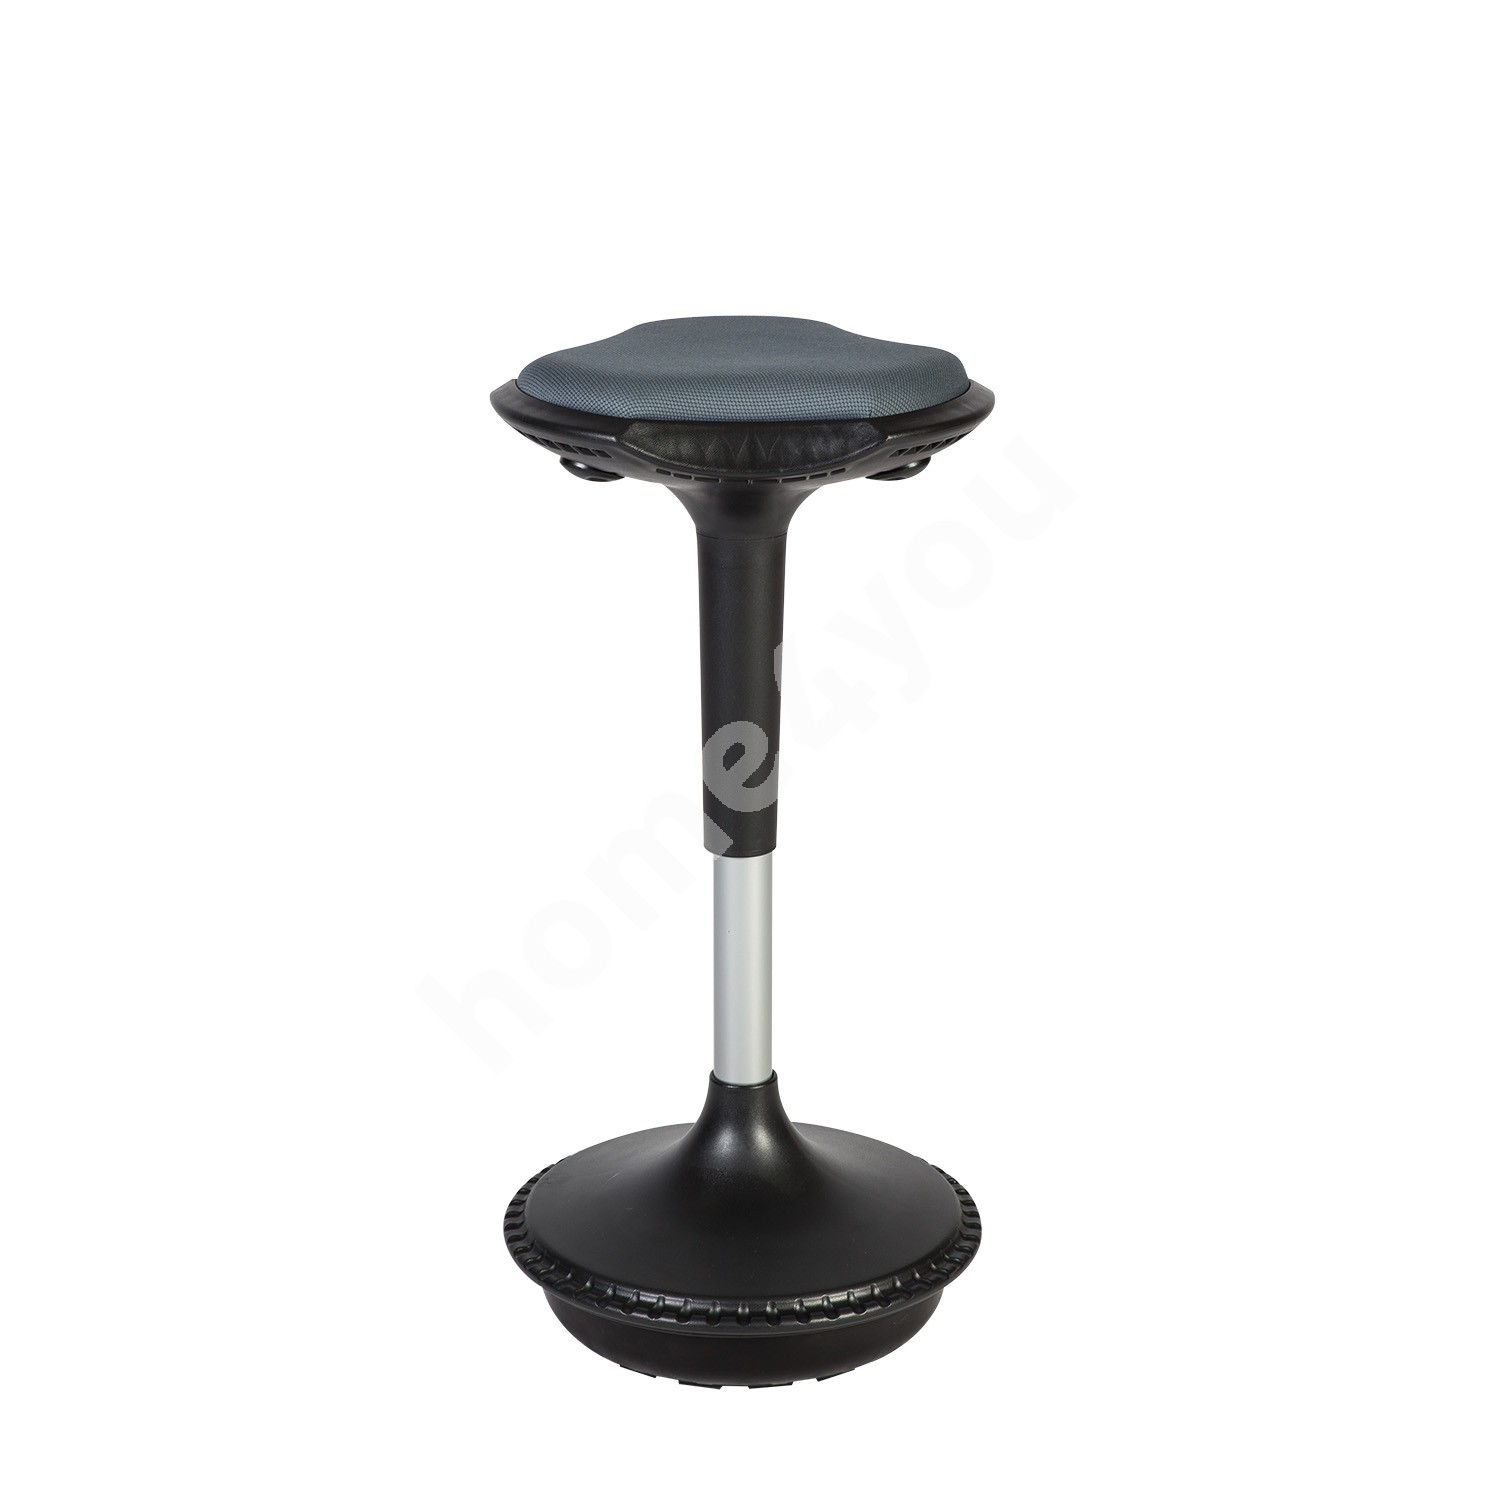 Balance stool JUST FUN D33xH59,5-84cm, seat pad is upholstered with fabric, color: grey